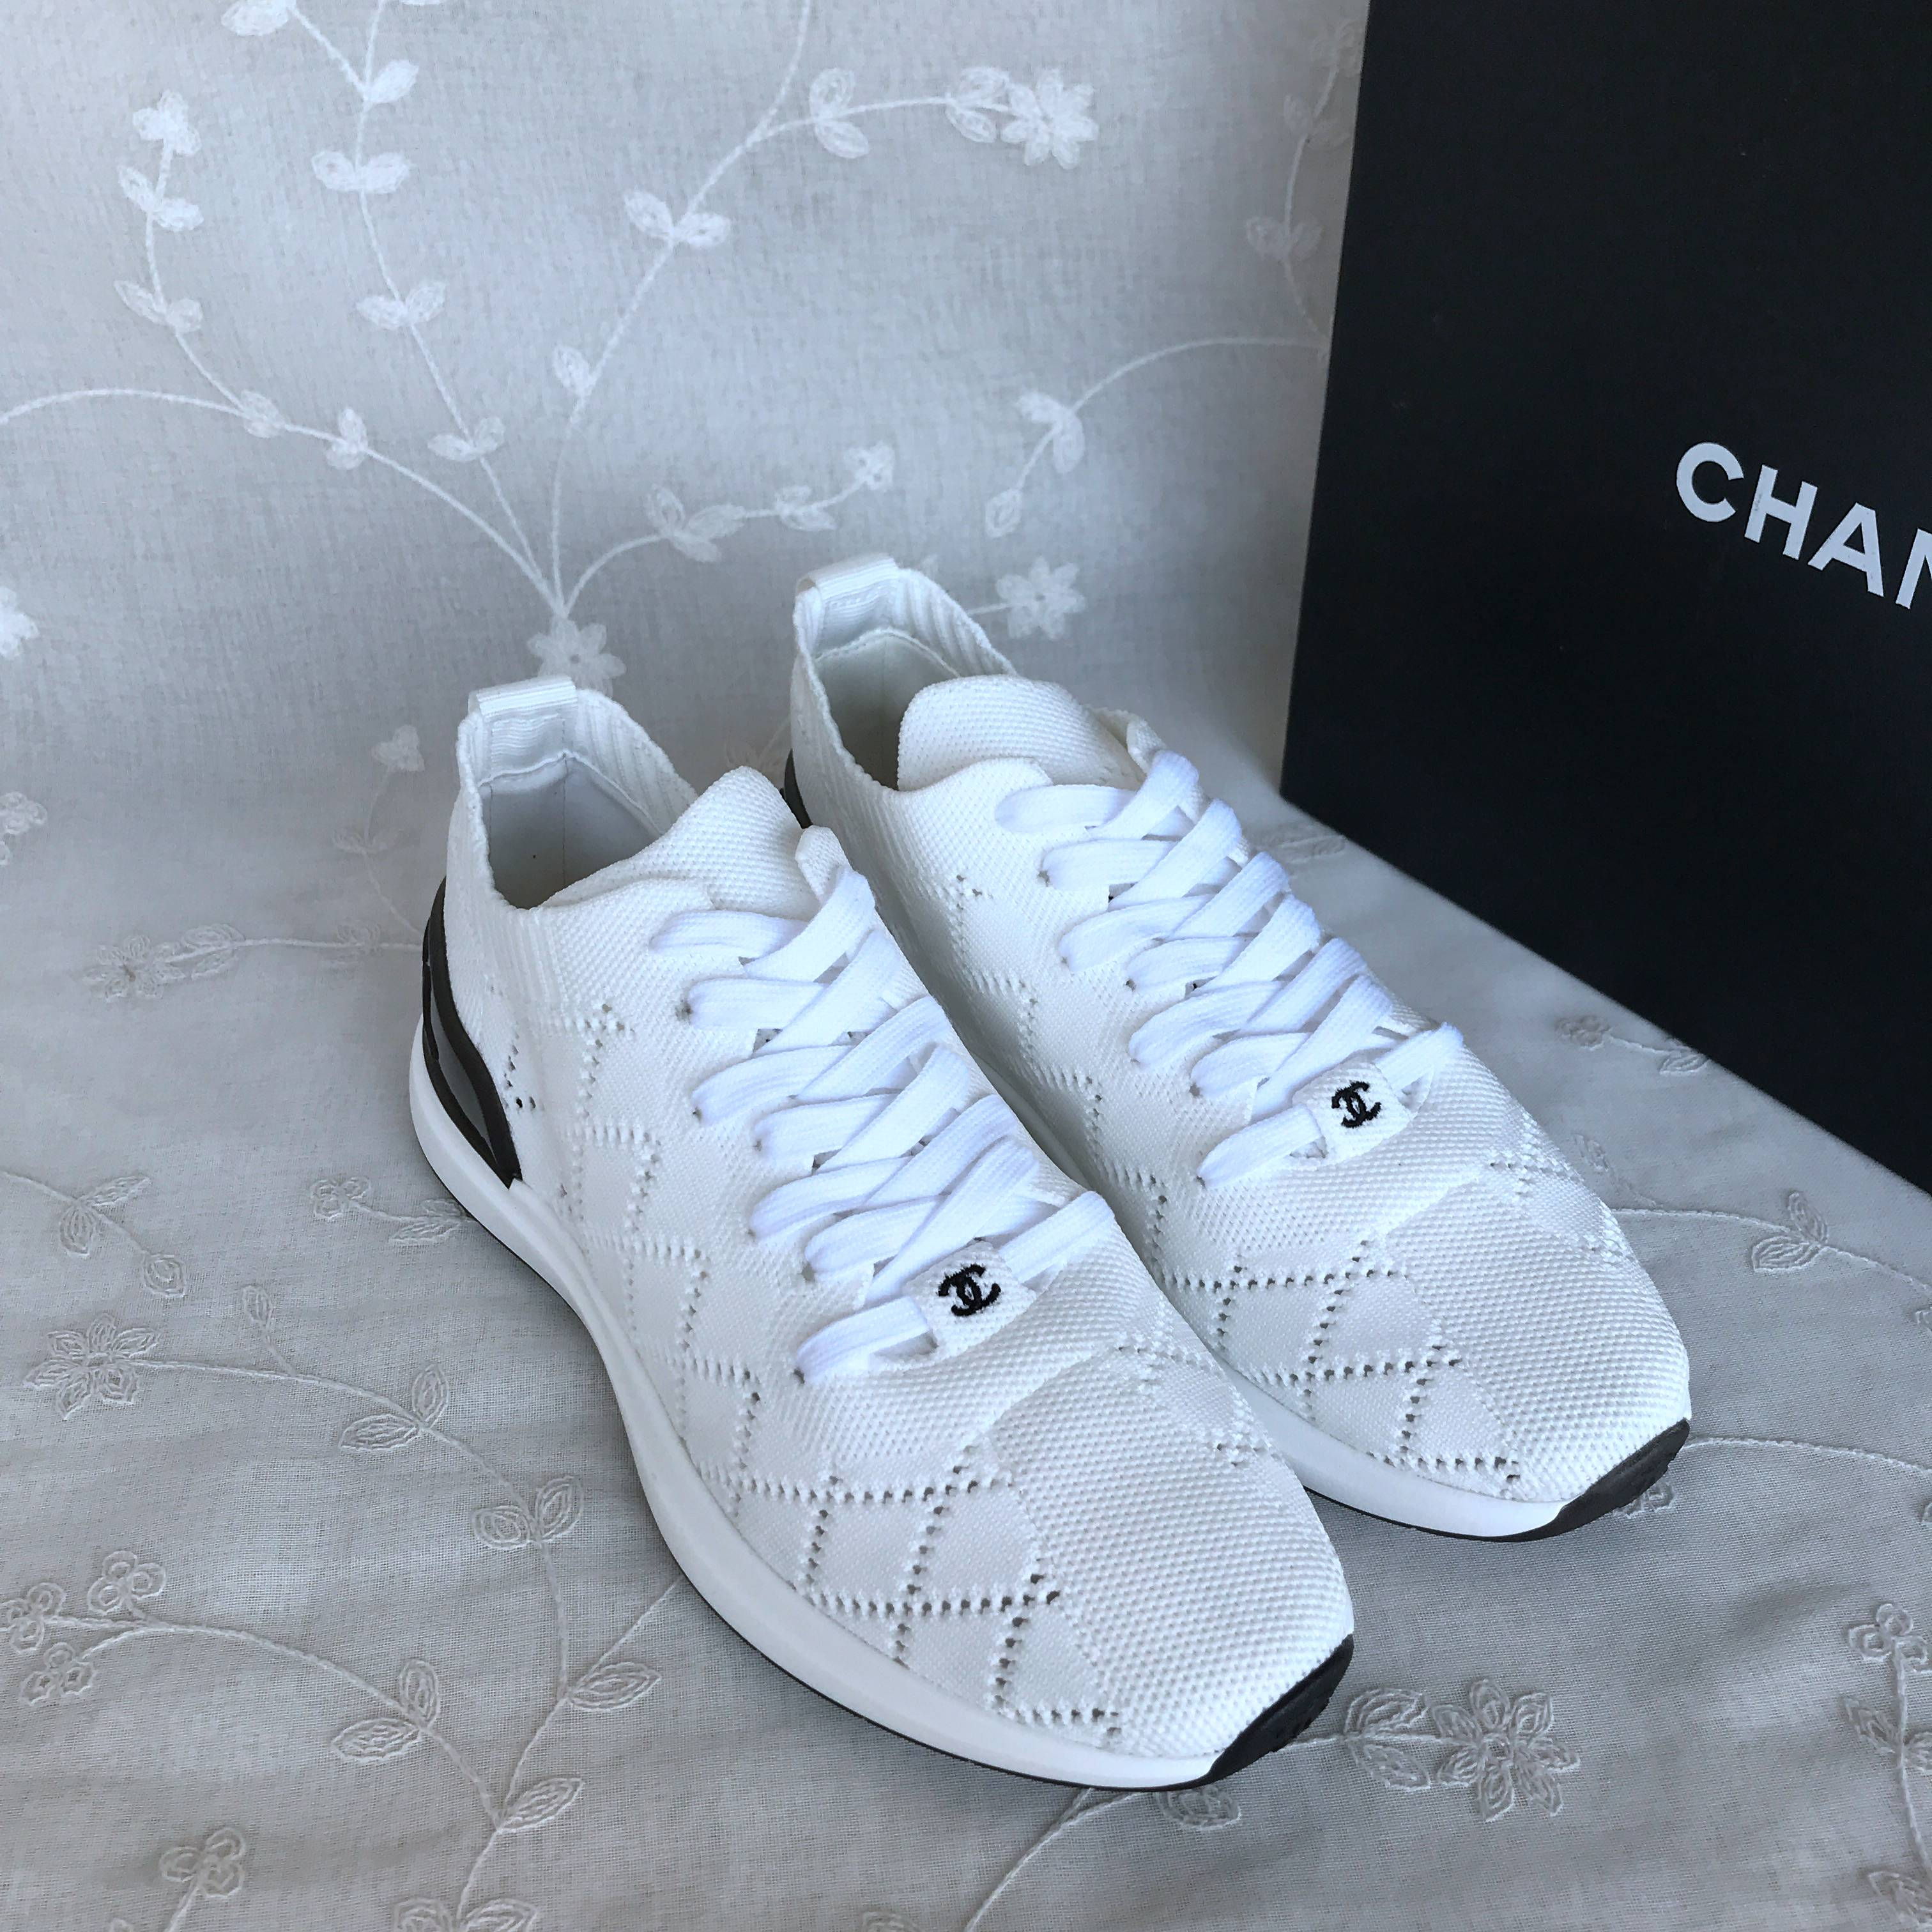 Chanel Casual Shoes 862215